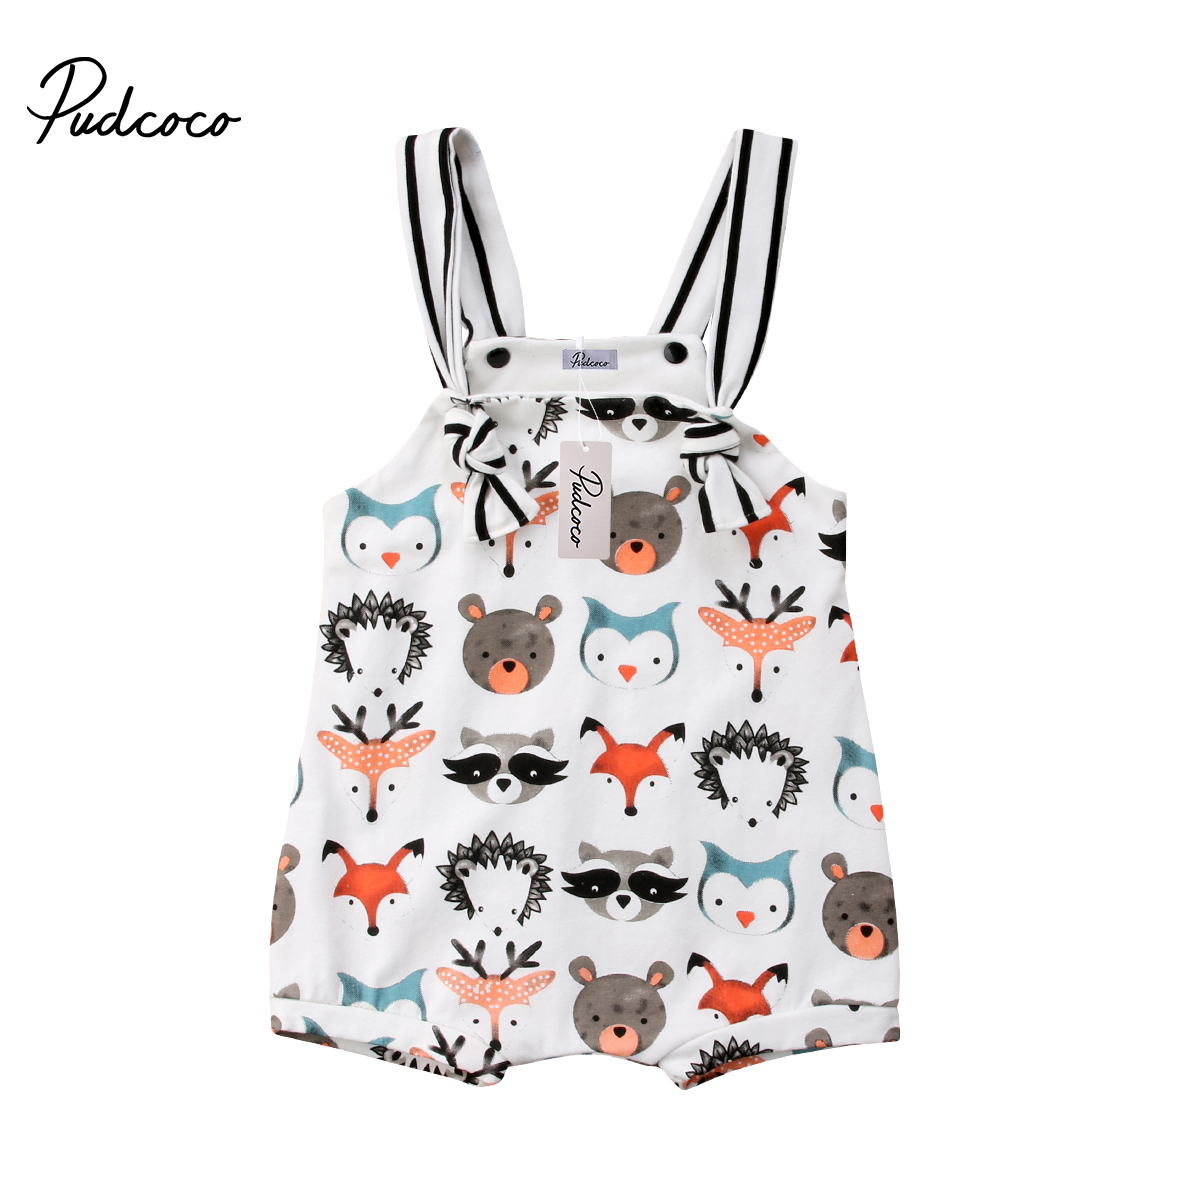 2018 Brand New Summer Toddler Infant Newborn Baby Girls Boys Romper 0-24M Sleeveless Cartoon Animal Jumpsuits Sunsuit Playsuit